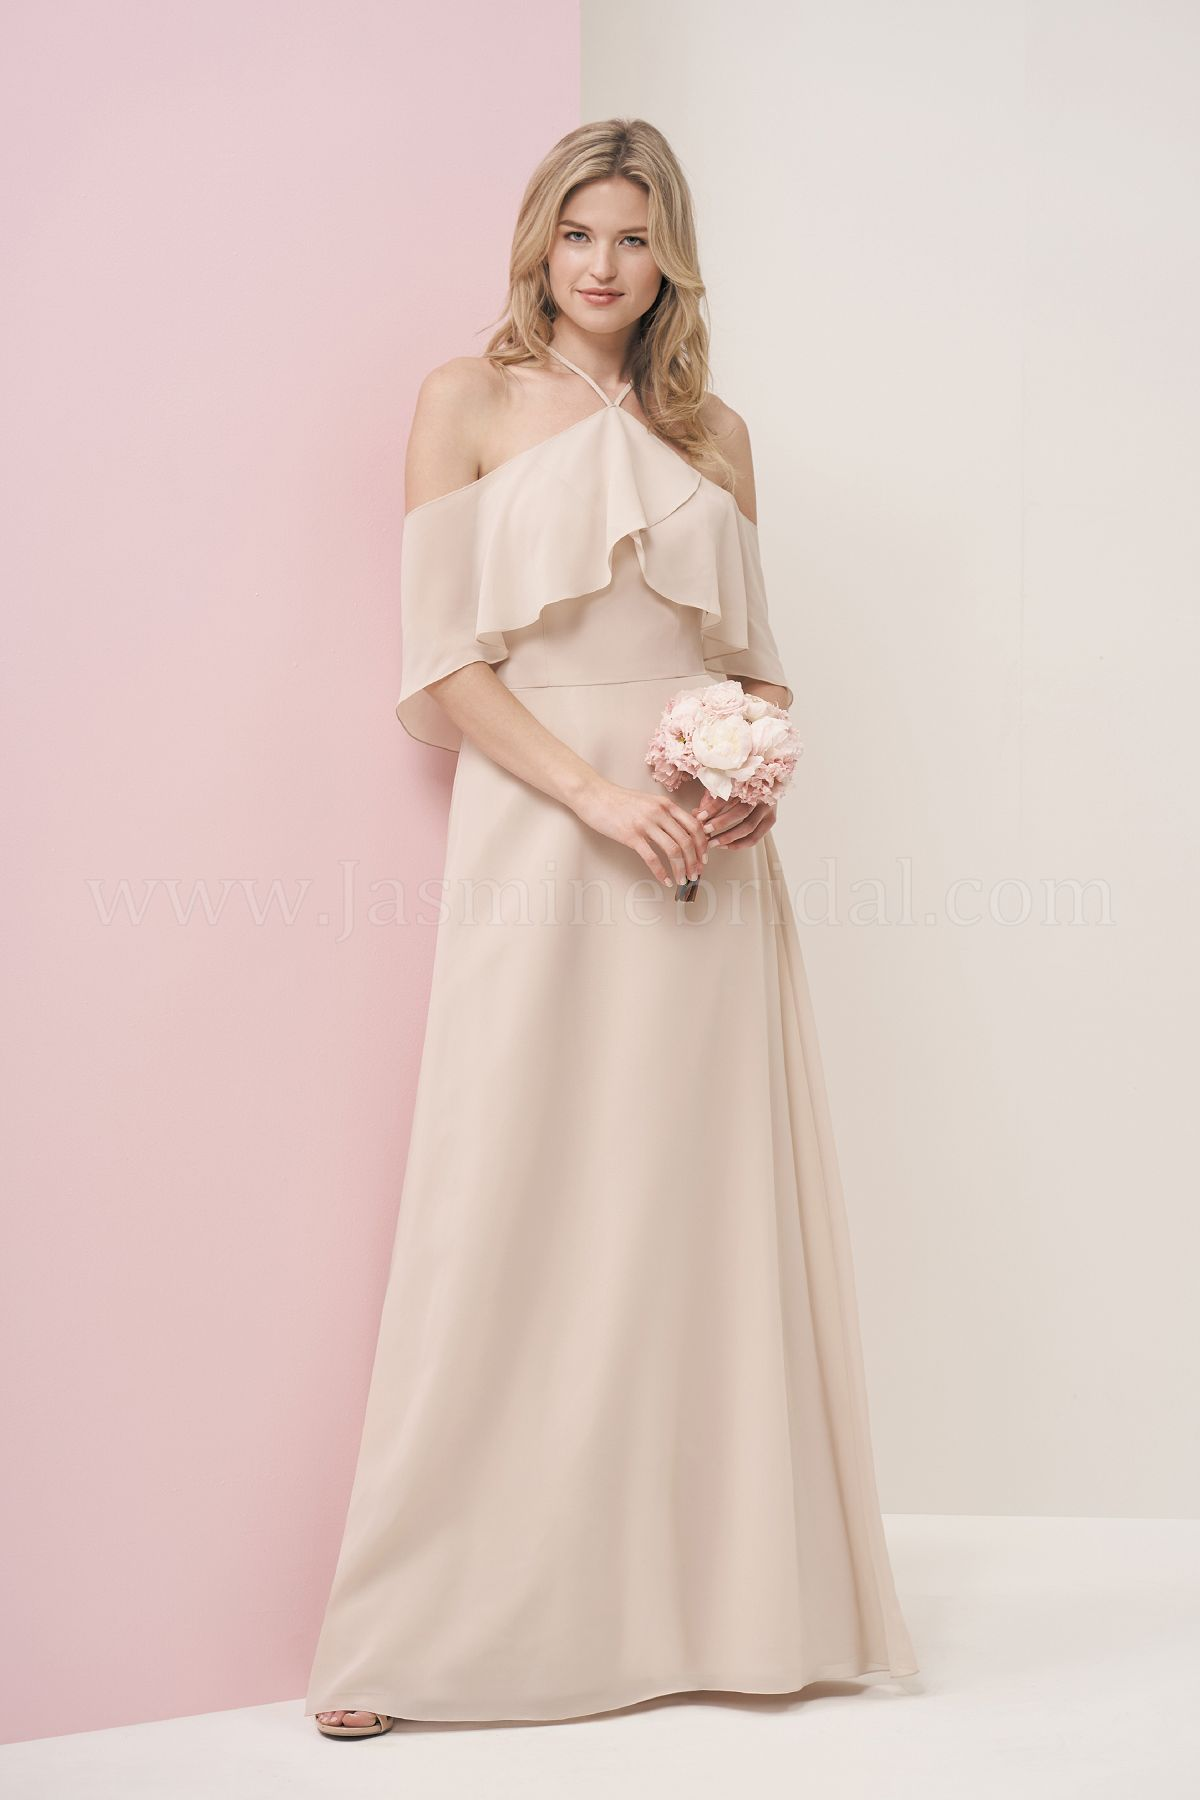 bridesmaid-dresses-P196054-F.jpg